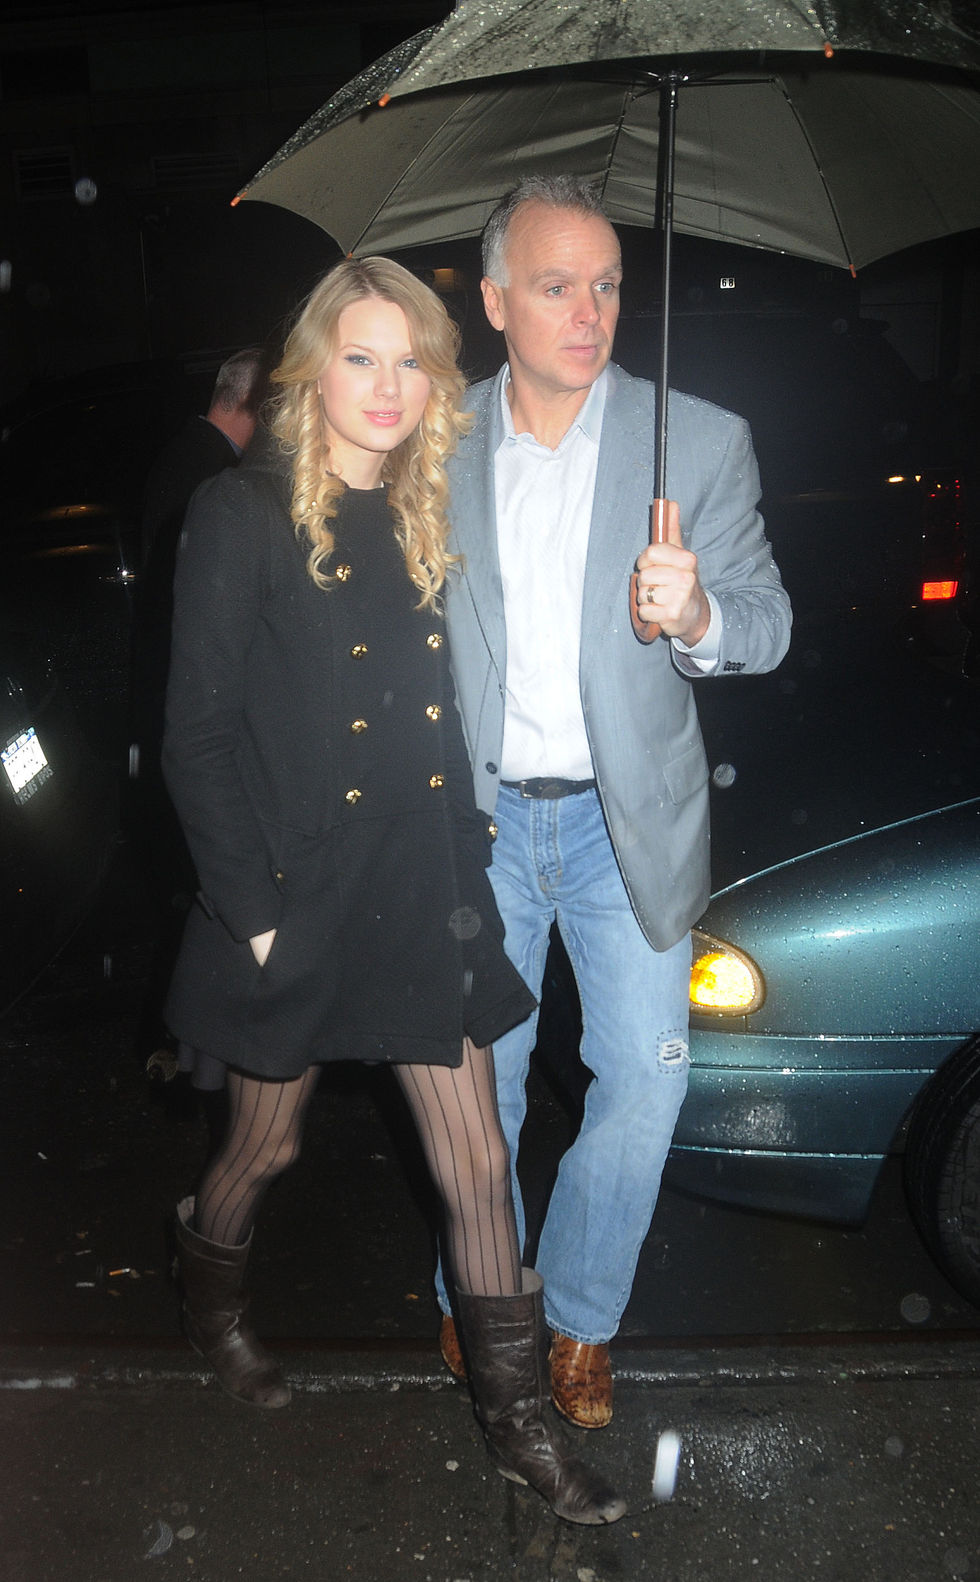 taylor-swift-saturday-night-live-after-party-in-new-york-city-01